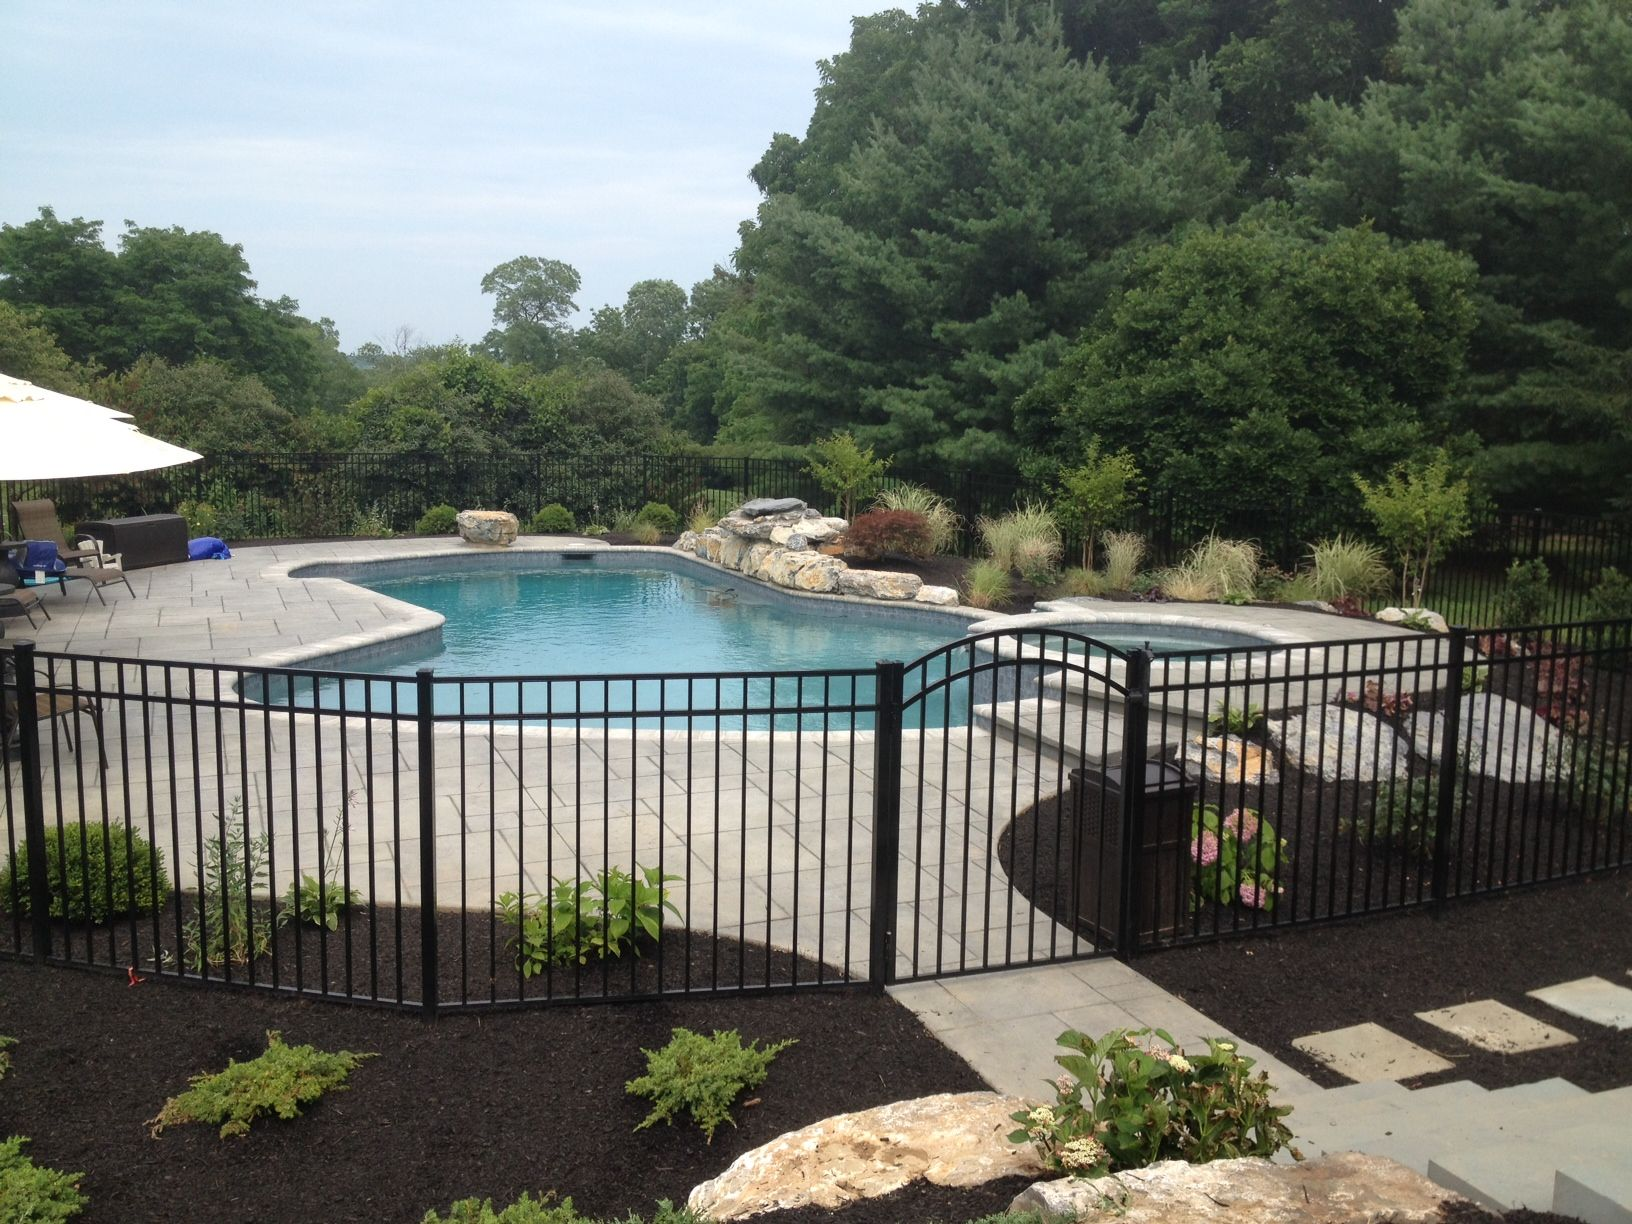 Pool Designs And Landscaping 179 best pool fencing images on pinterest | pool fence, backyard